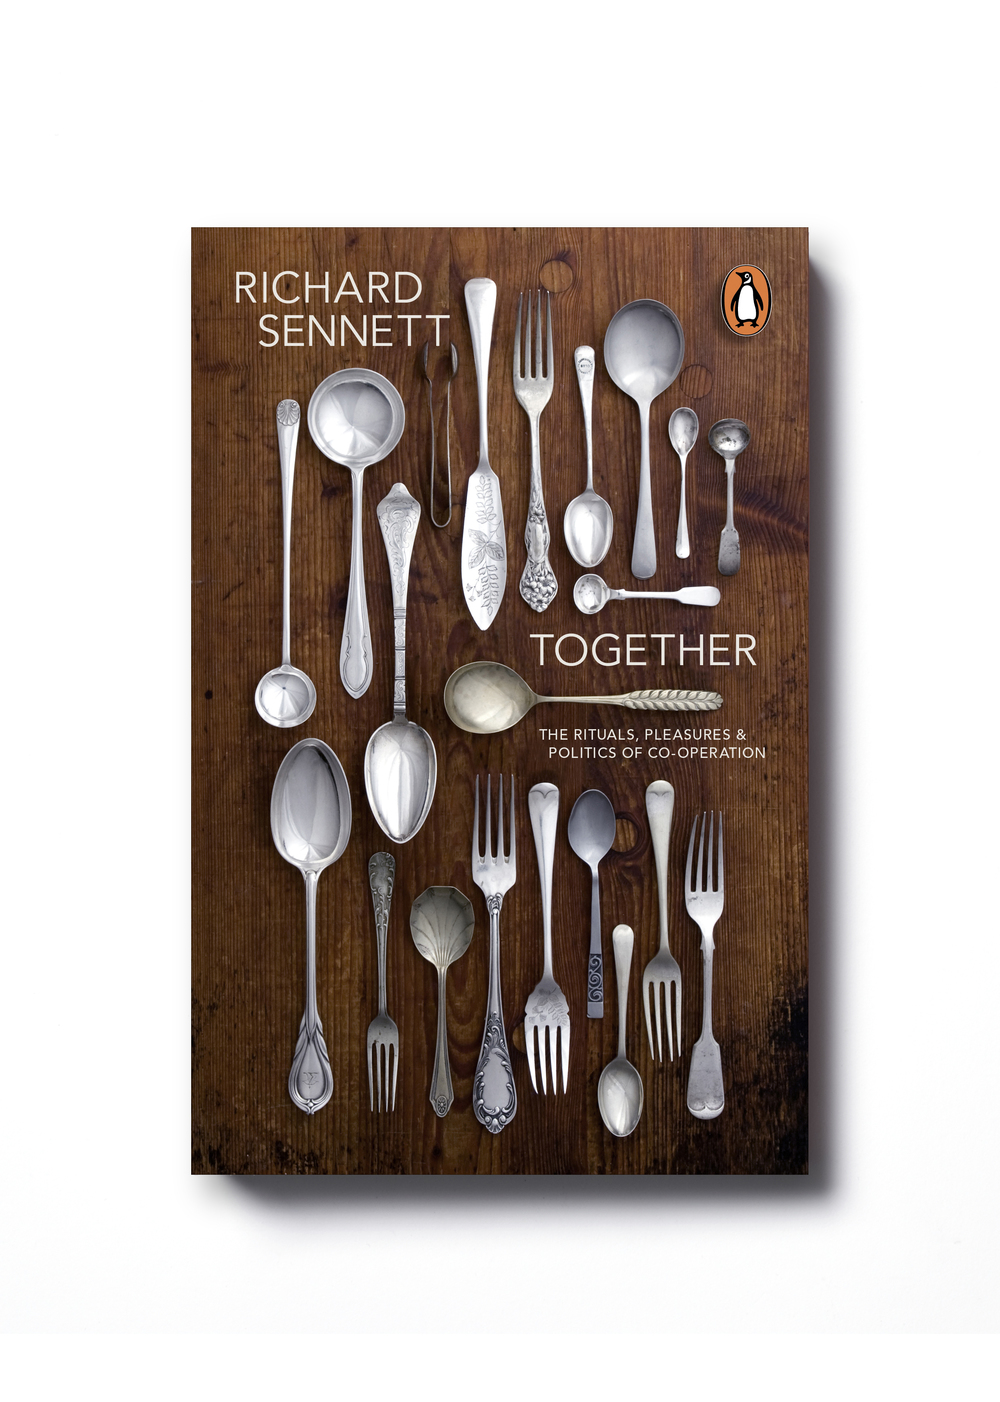 Together by Richard Sennett - Design: Jim Stoddart